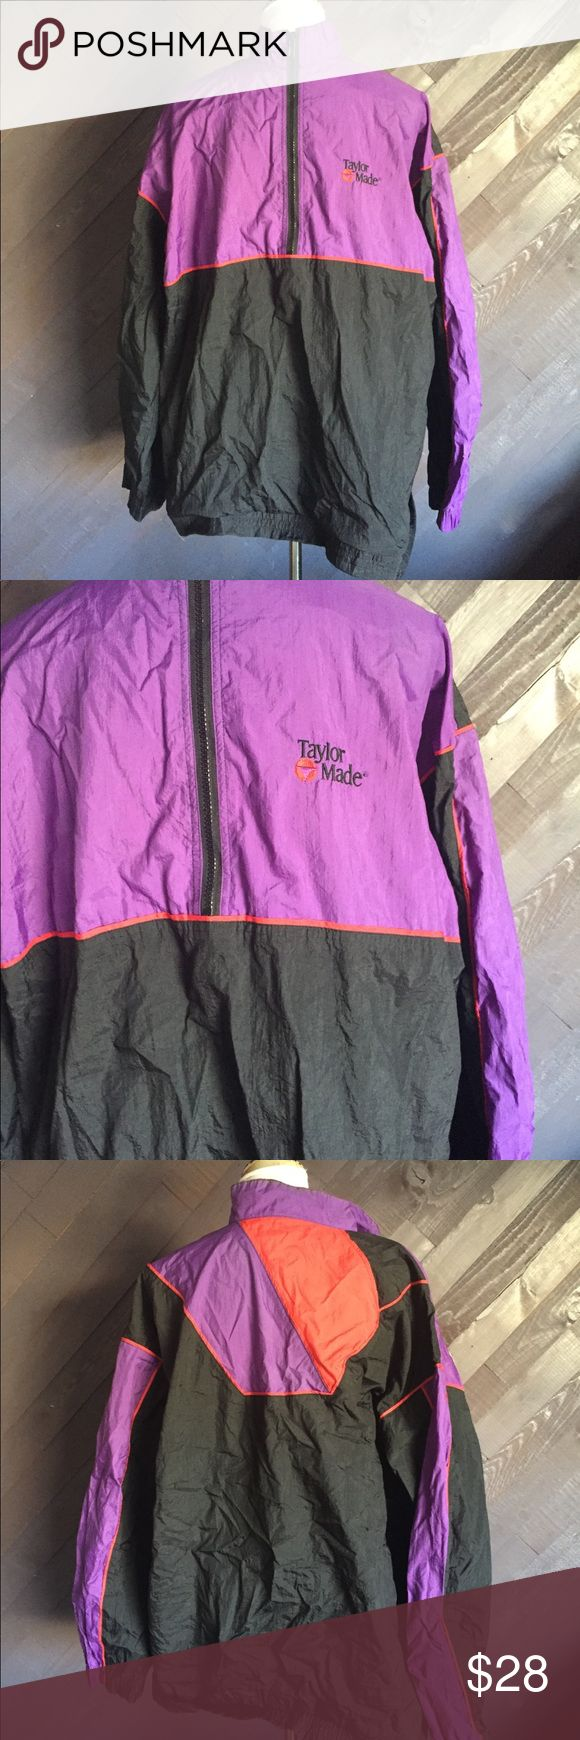 Vintage Taylor Made Pull Over Windbreaker Vintage Taylor made pull over zip up windbreaker in good condition has some discoloration on the inside label. Measures 30 Long & 27 from arm pit to arm pit taylor made Jackets & Coats Windbreakers #Clubs.....TaylorMadeofCourse!